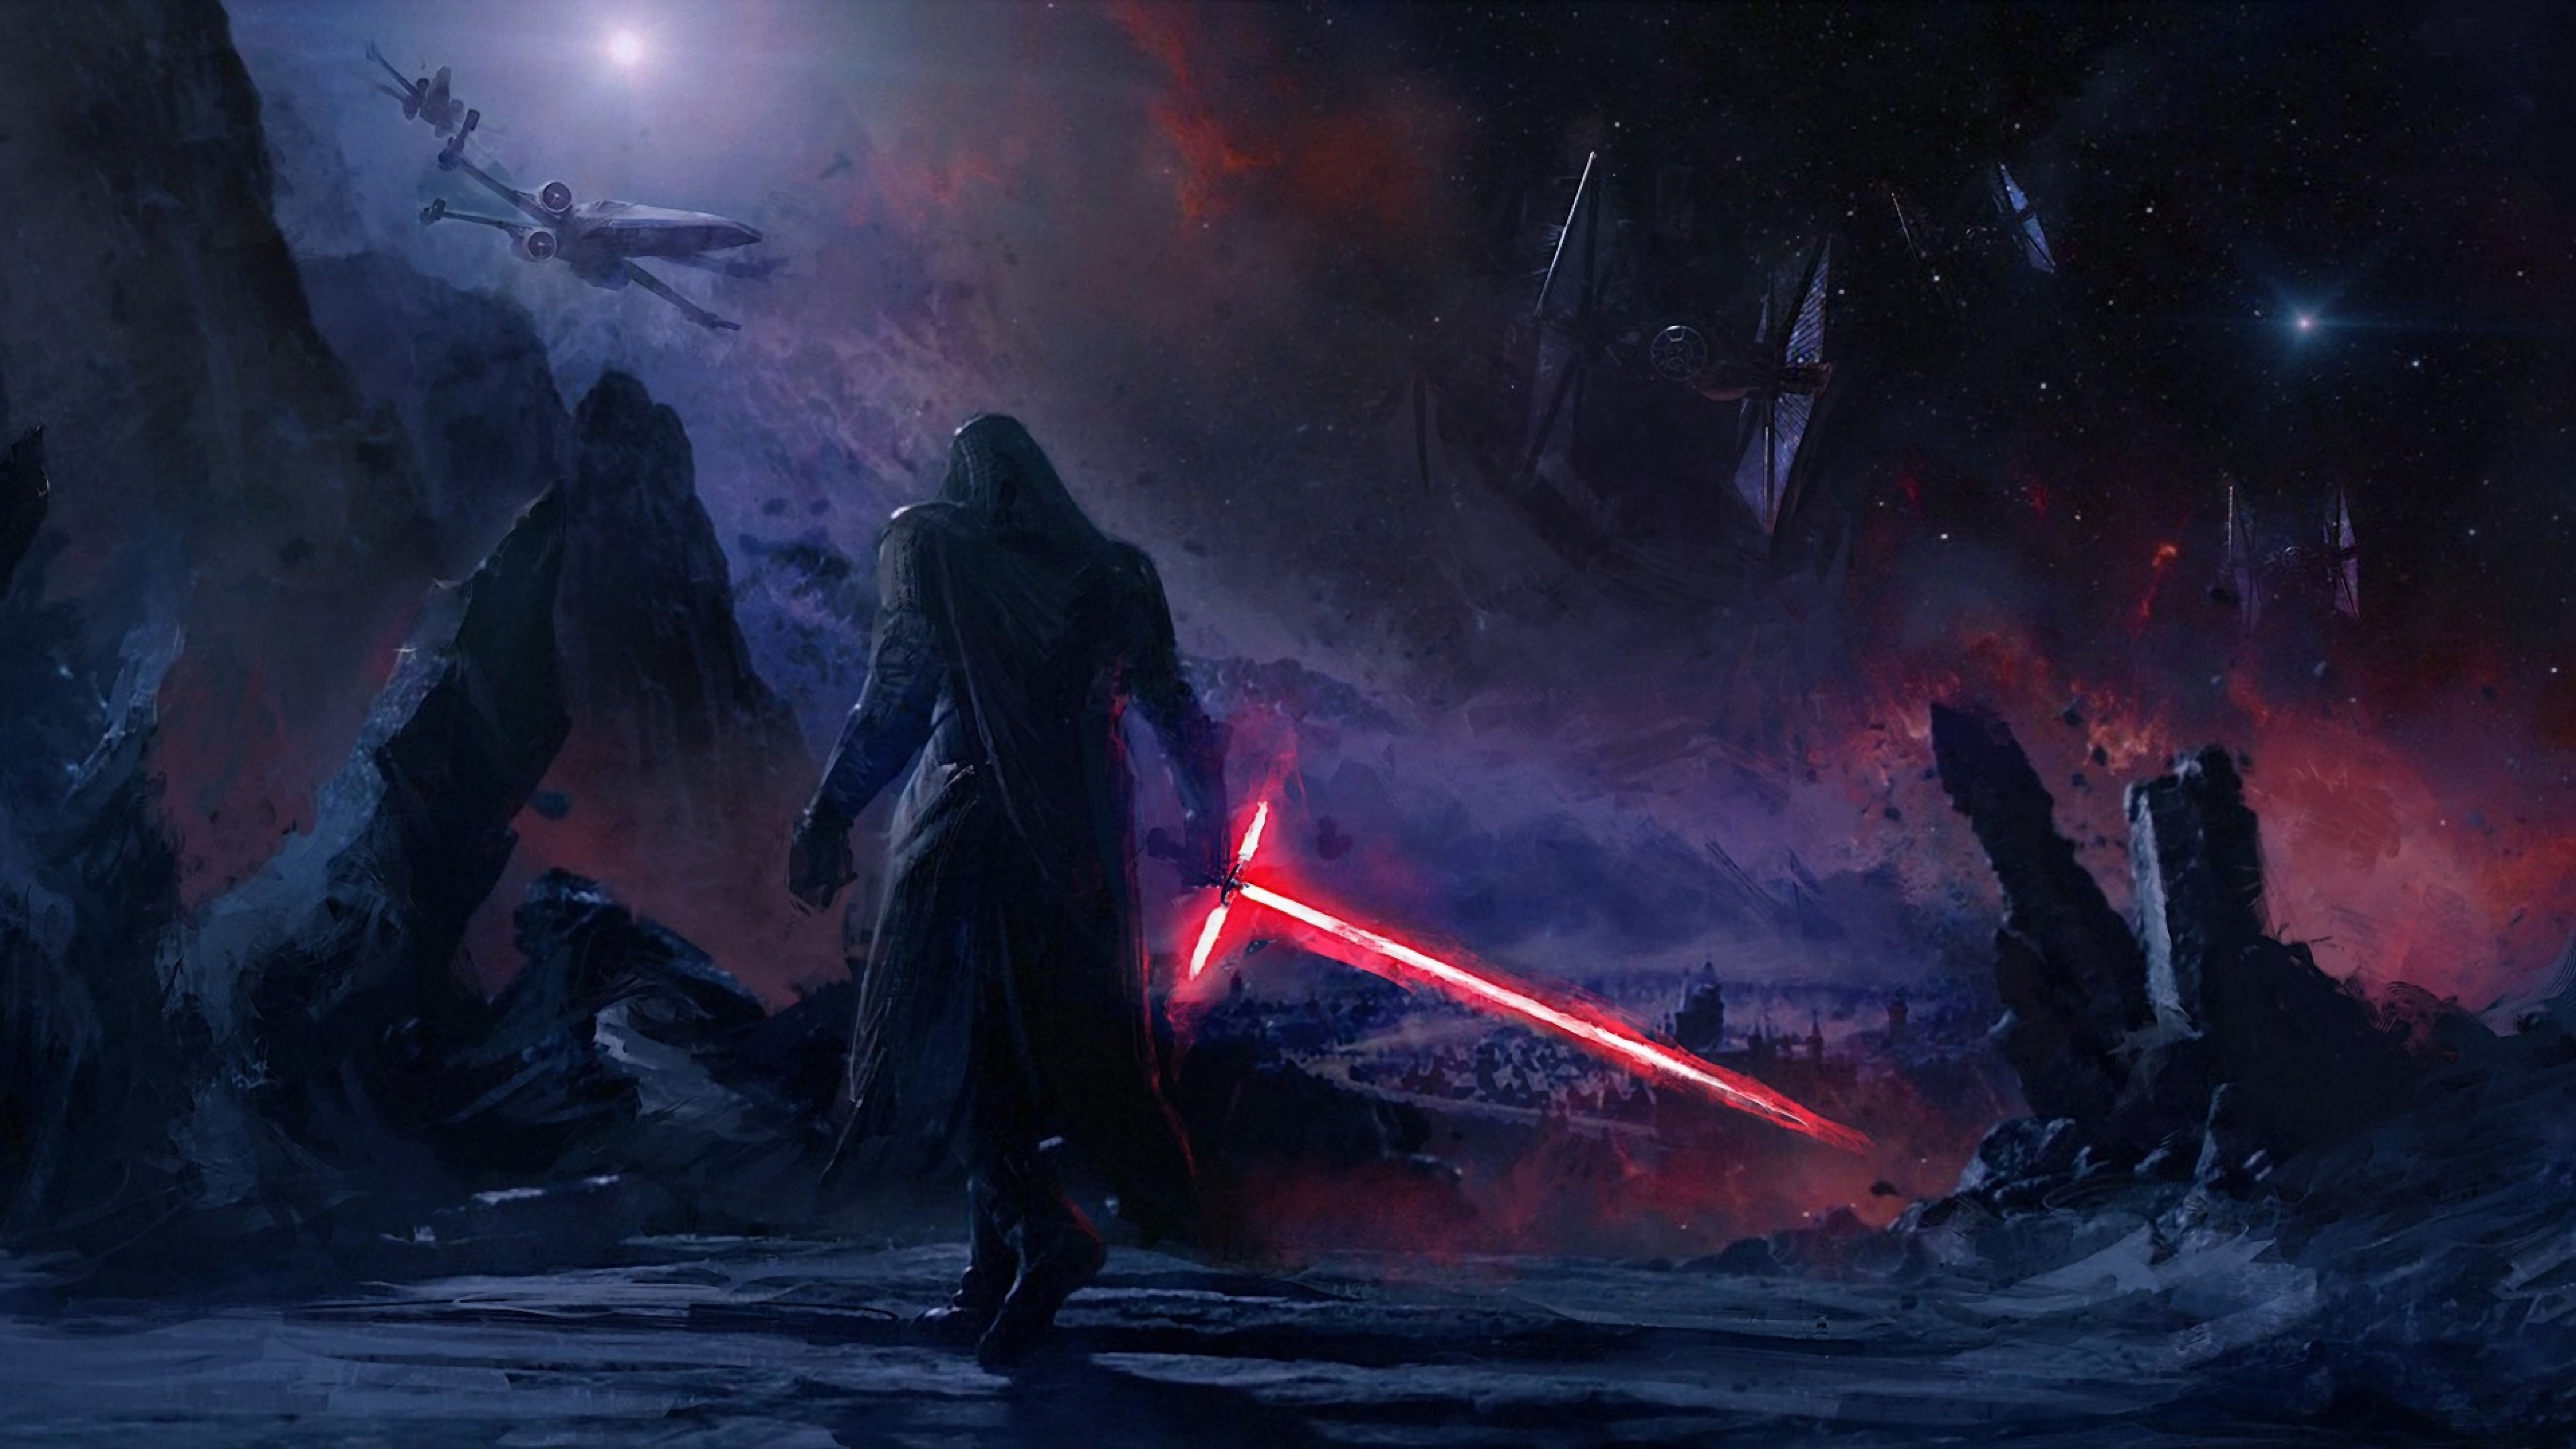 kylo ren star wars art  full hd wallpaper